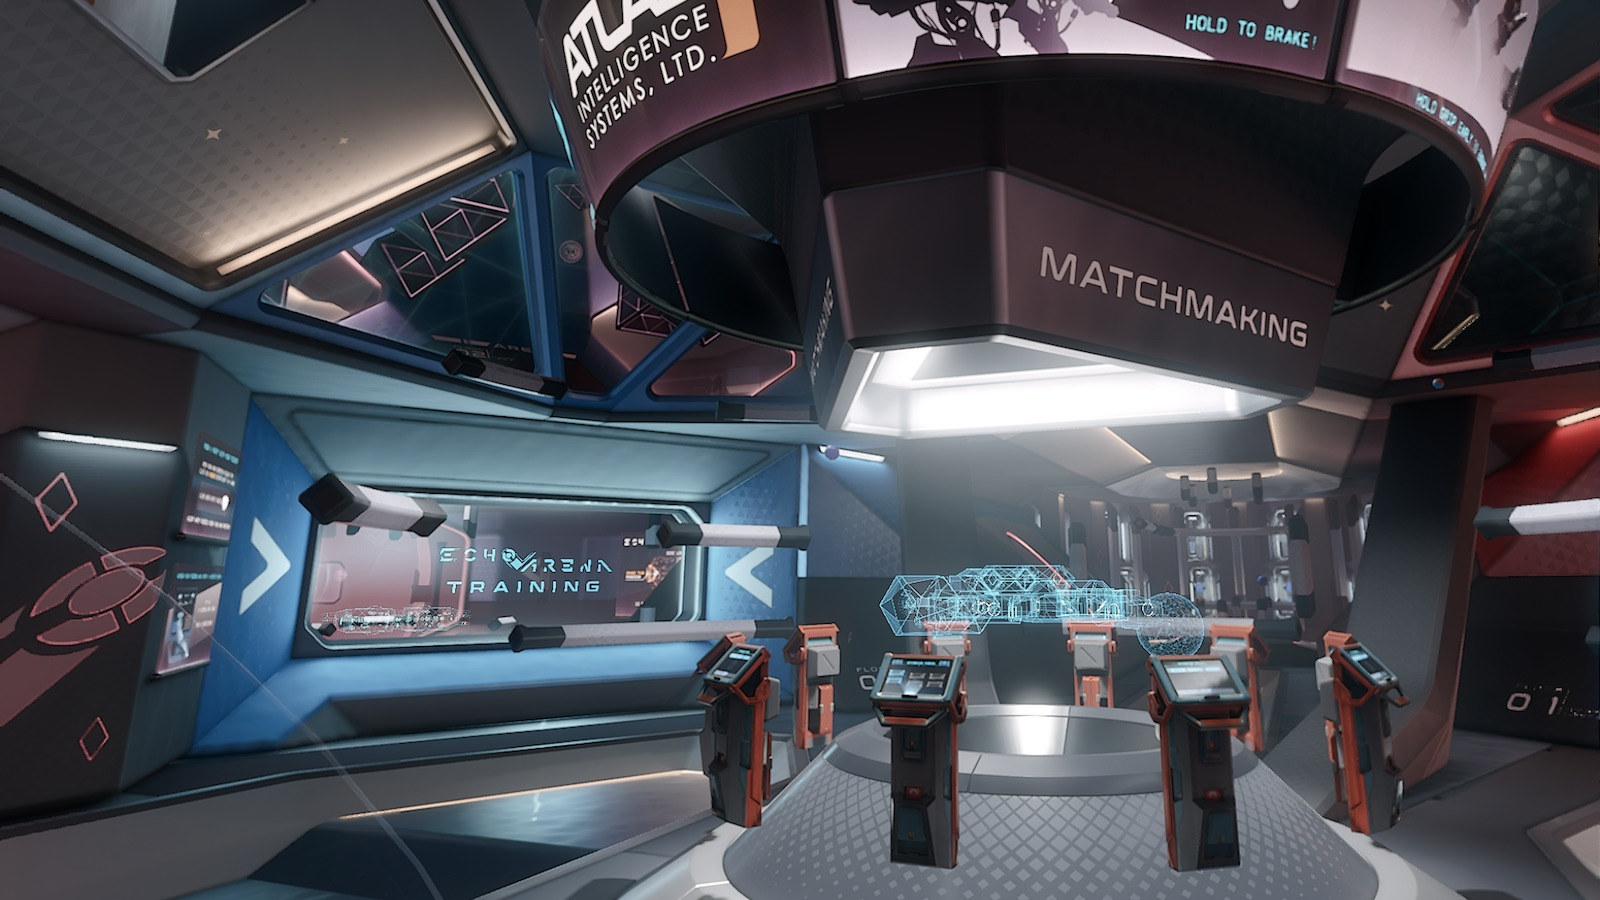 The New Lobby In Echo Arena Looks Like Something Straight Out Of A Sci-Fi Movie